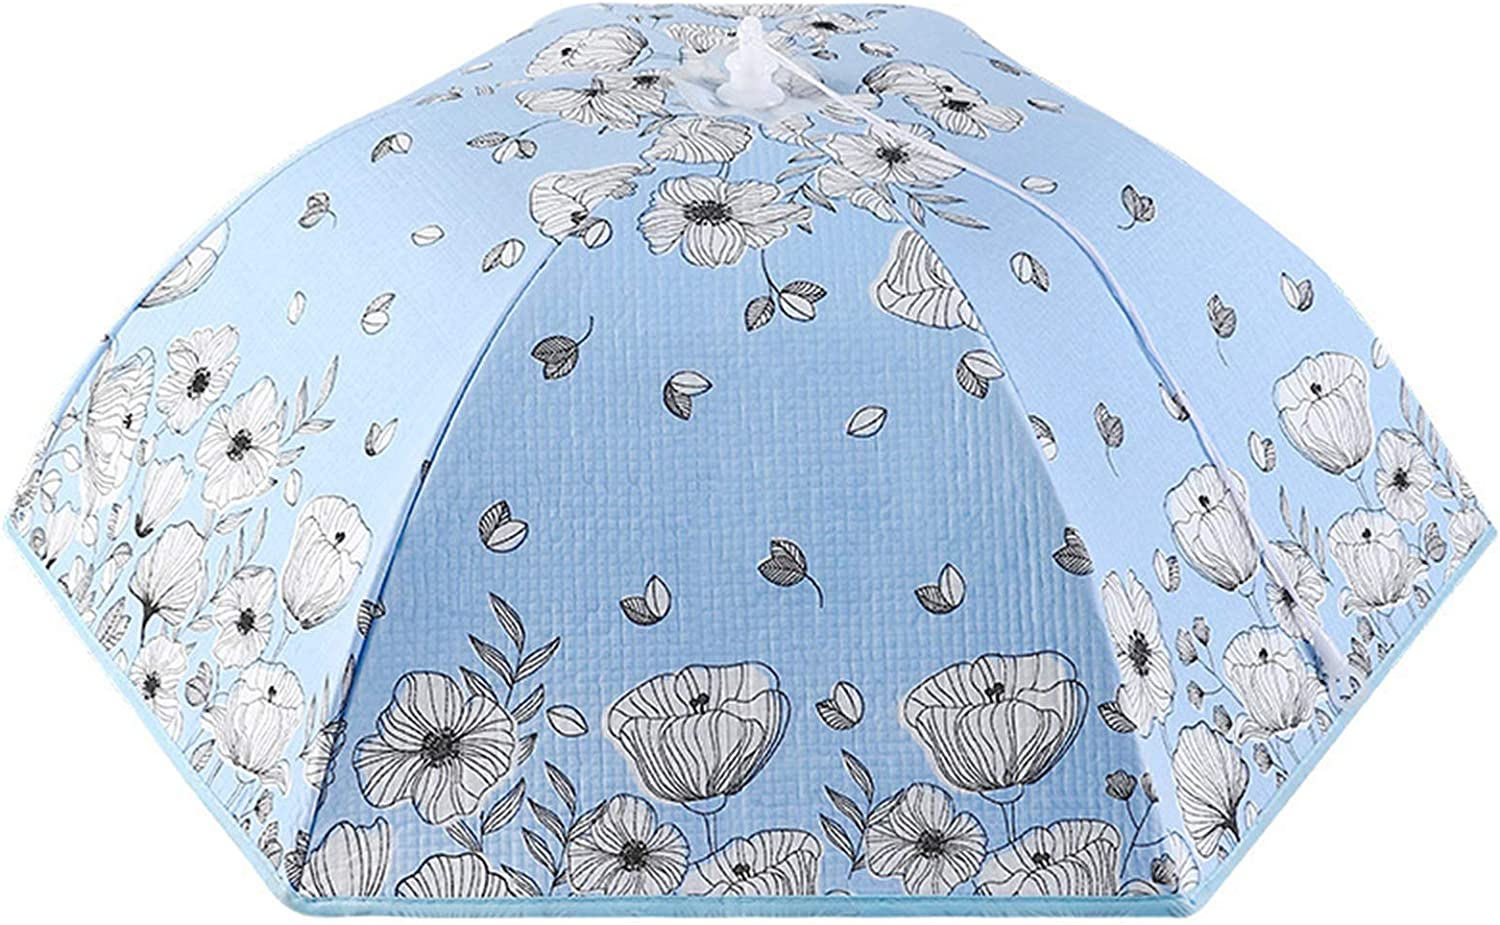 GL-GDD Insulated Food Cover, Hot Collapsible Food Tent Thermal Pop Up Umbrella Cover Keep Bugs&Dust Off for Kitchen Restaurant Picnic,Blue